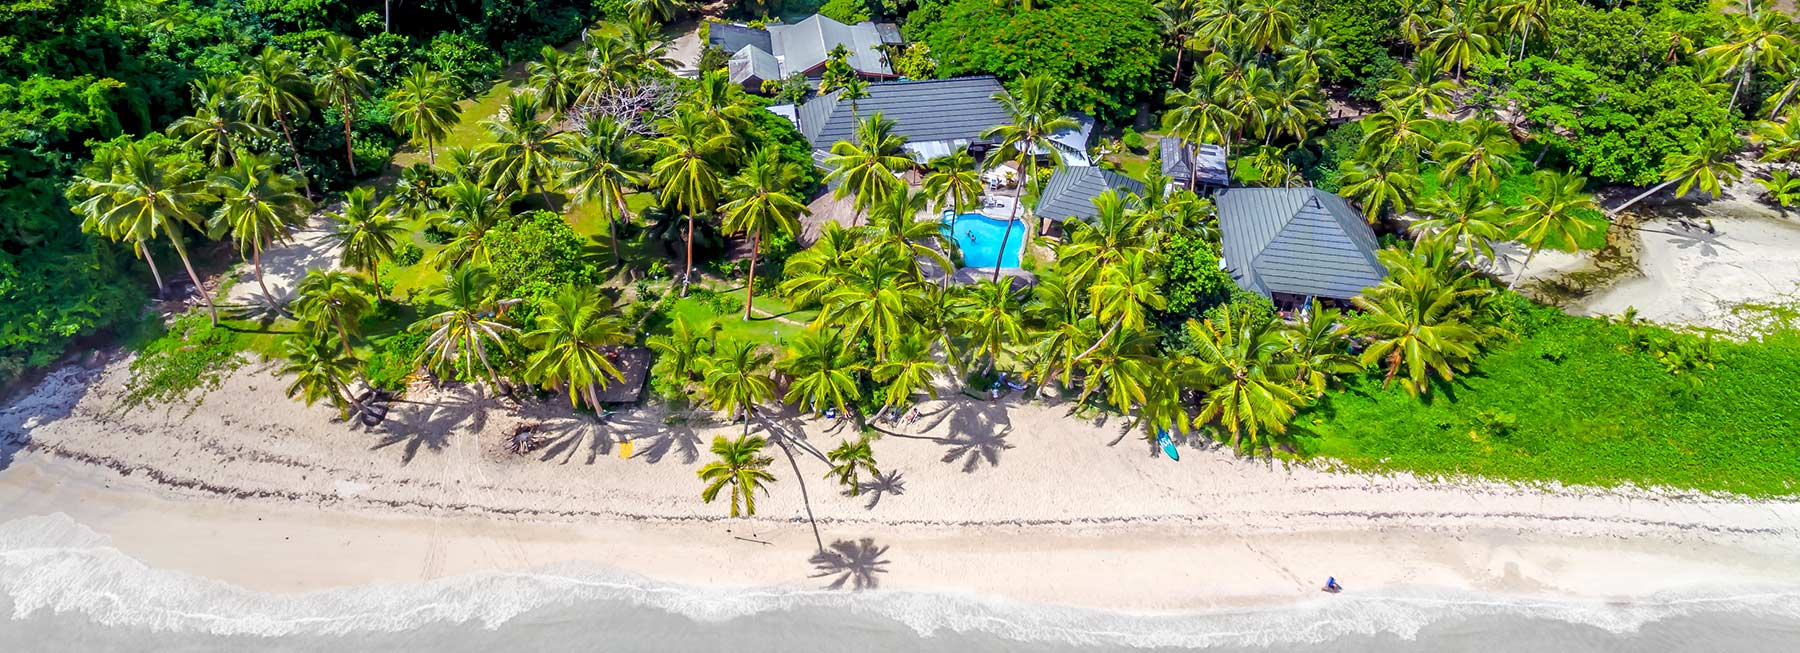 Fiji Beachouse backpacker resort from the air